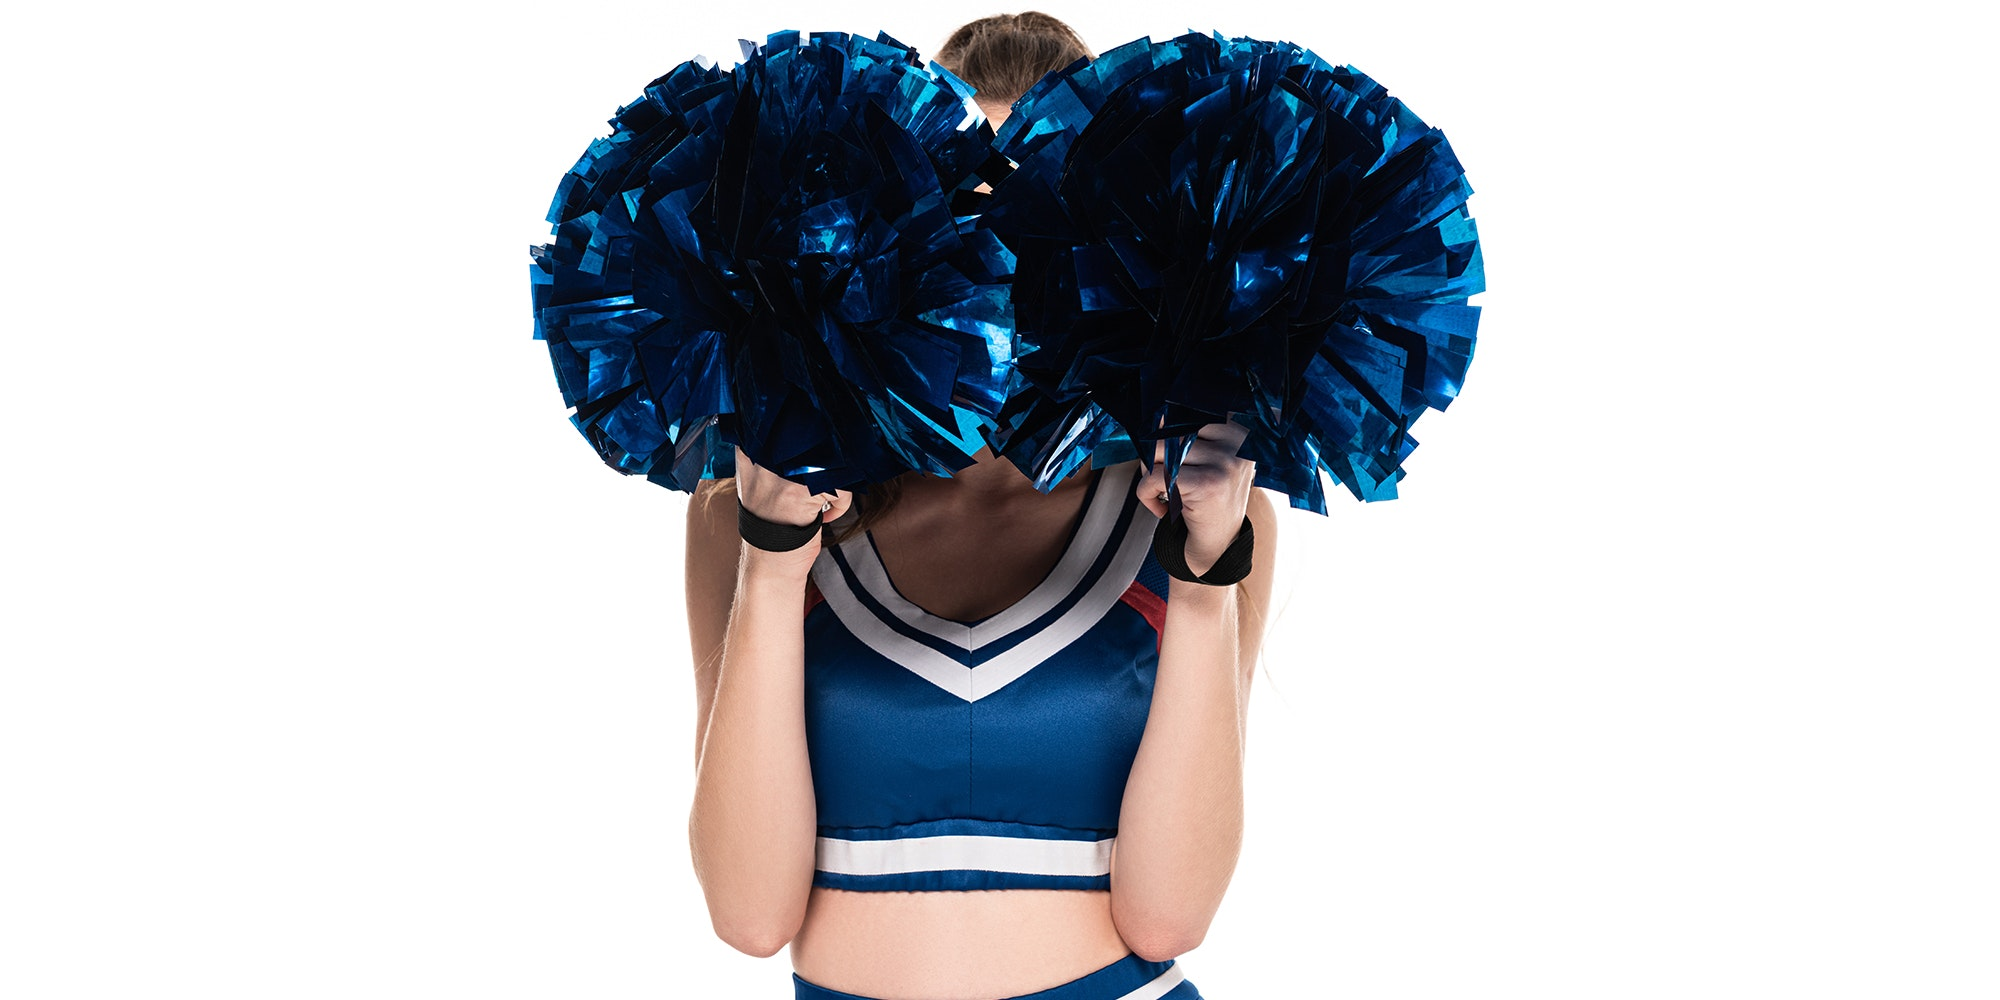 Cheerleader stands with pom poms in her face.